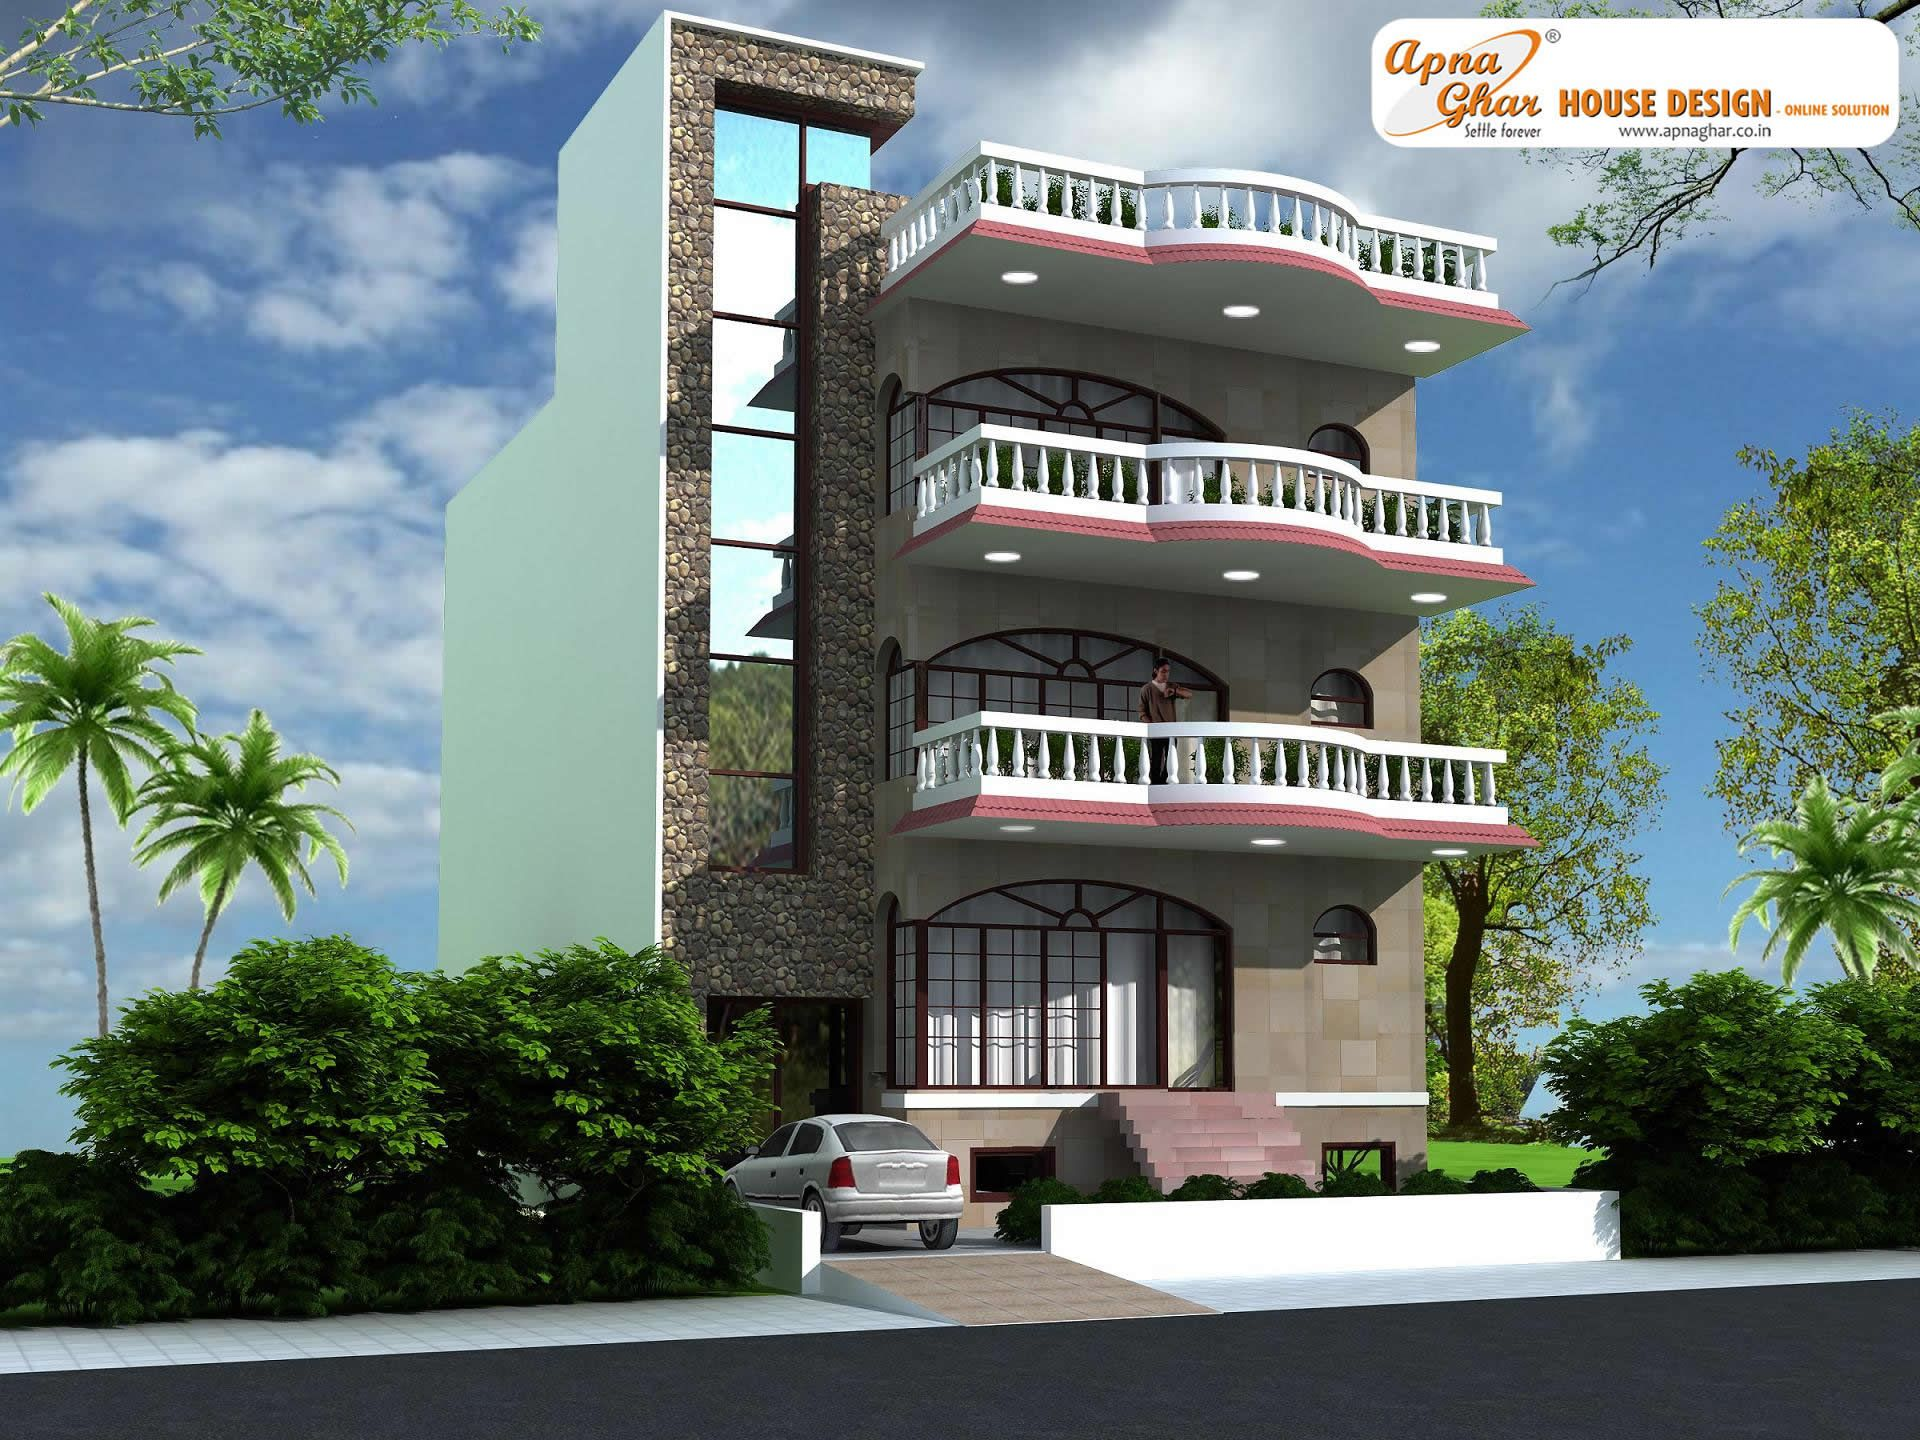 4 bedroom modern triplex 3 floor house design area for 9m frontage home designs